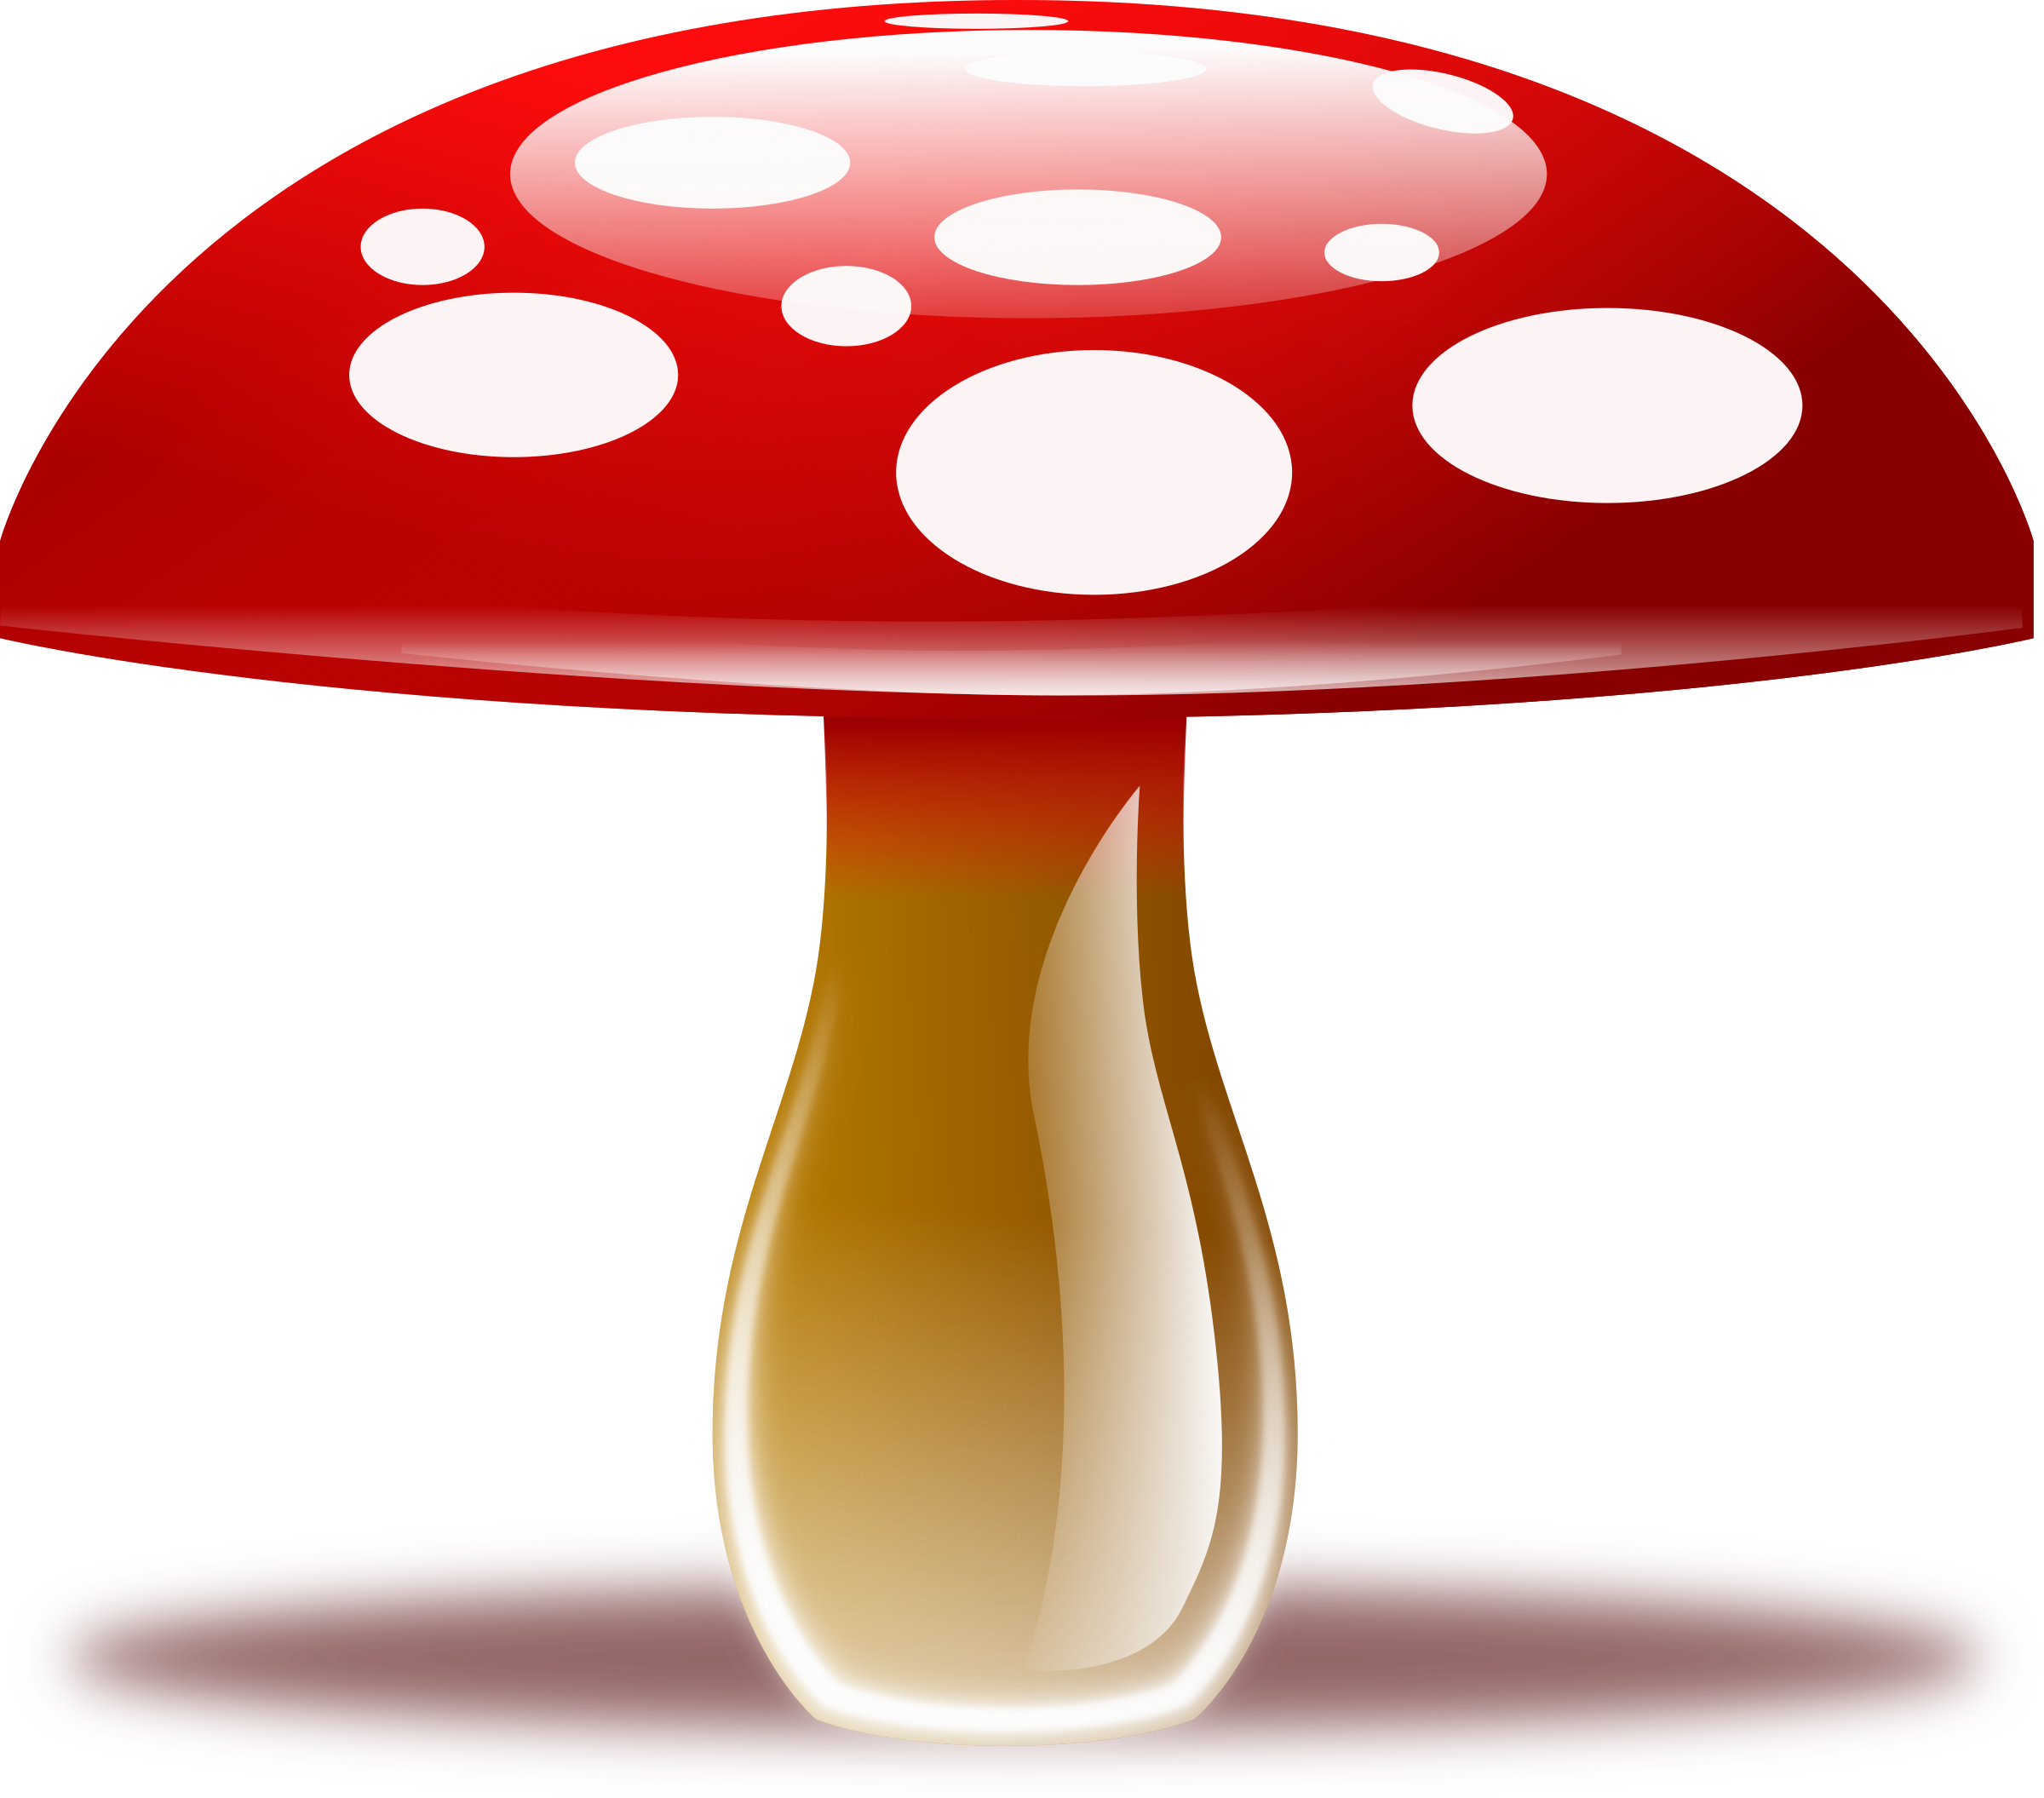 Red Mushroom Png Clipart image #42888